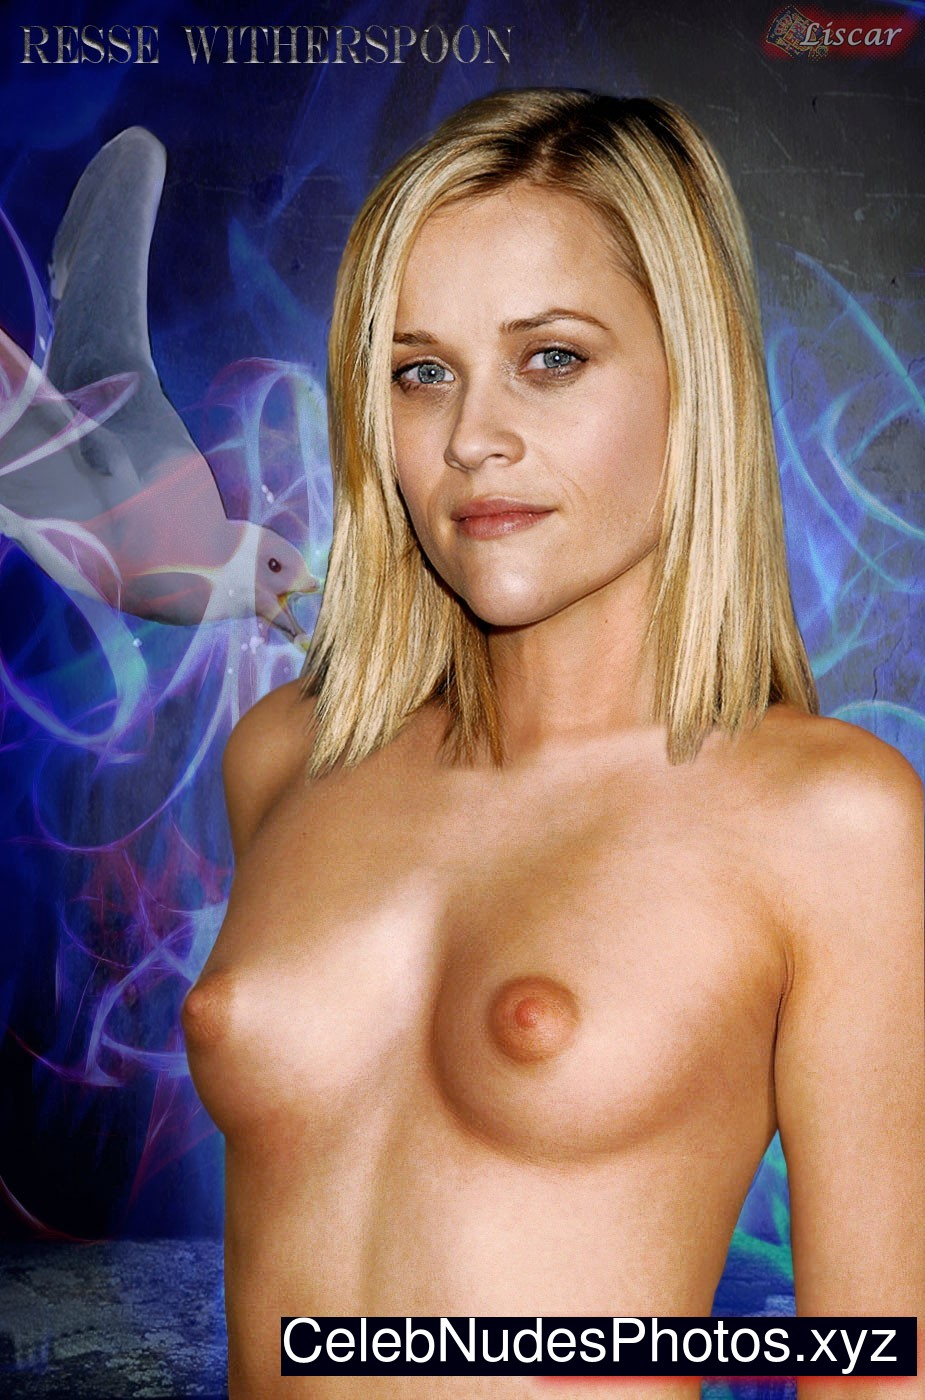 Reese Witherspoon Famous Nude sexy 19